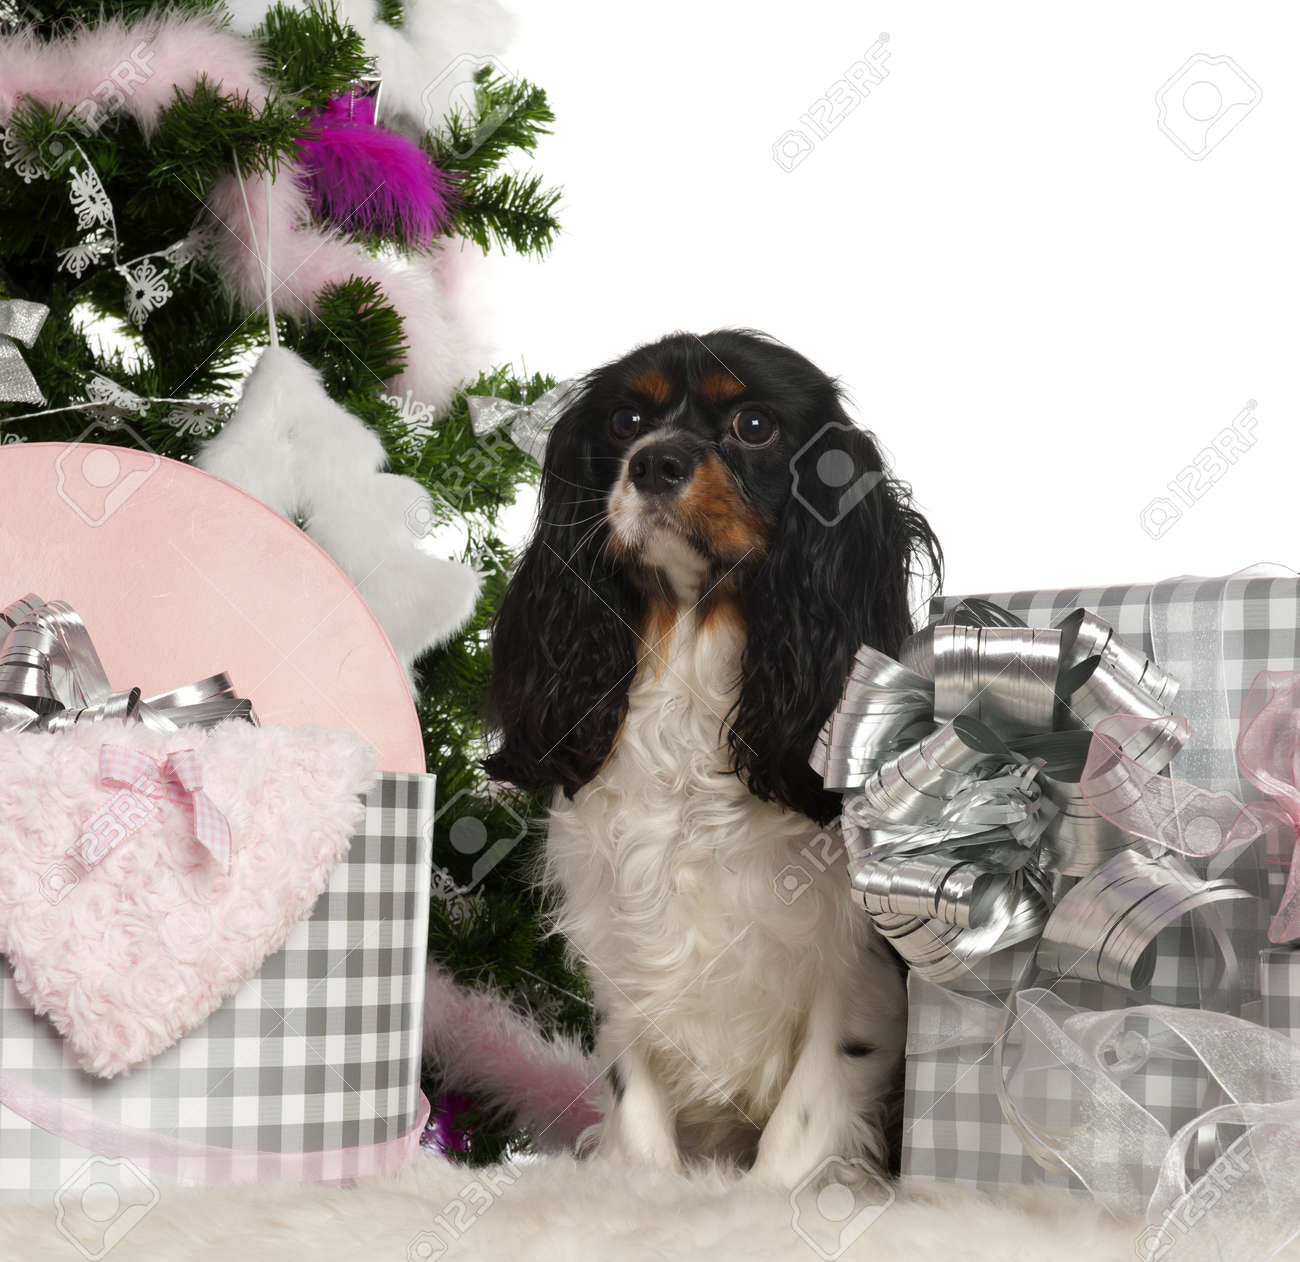 Cavalier King Charles Spaniel, 18 months old, with Christmas tree and gifts in front